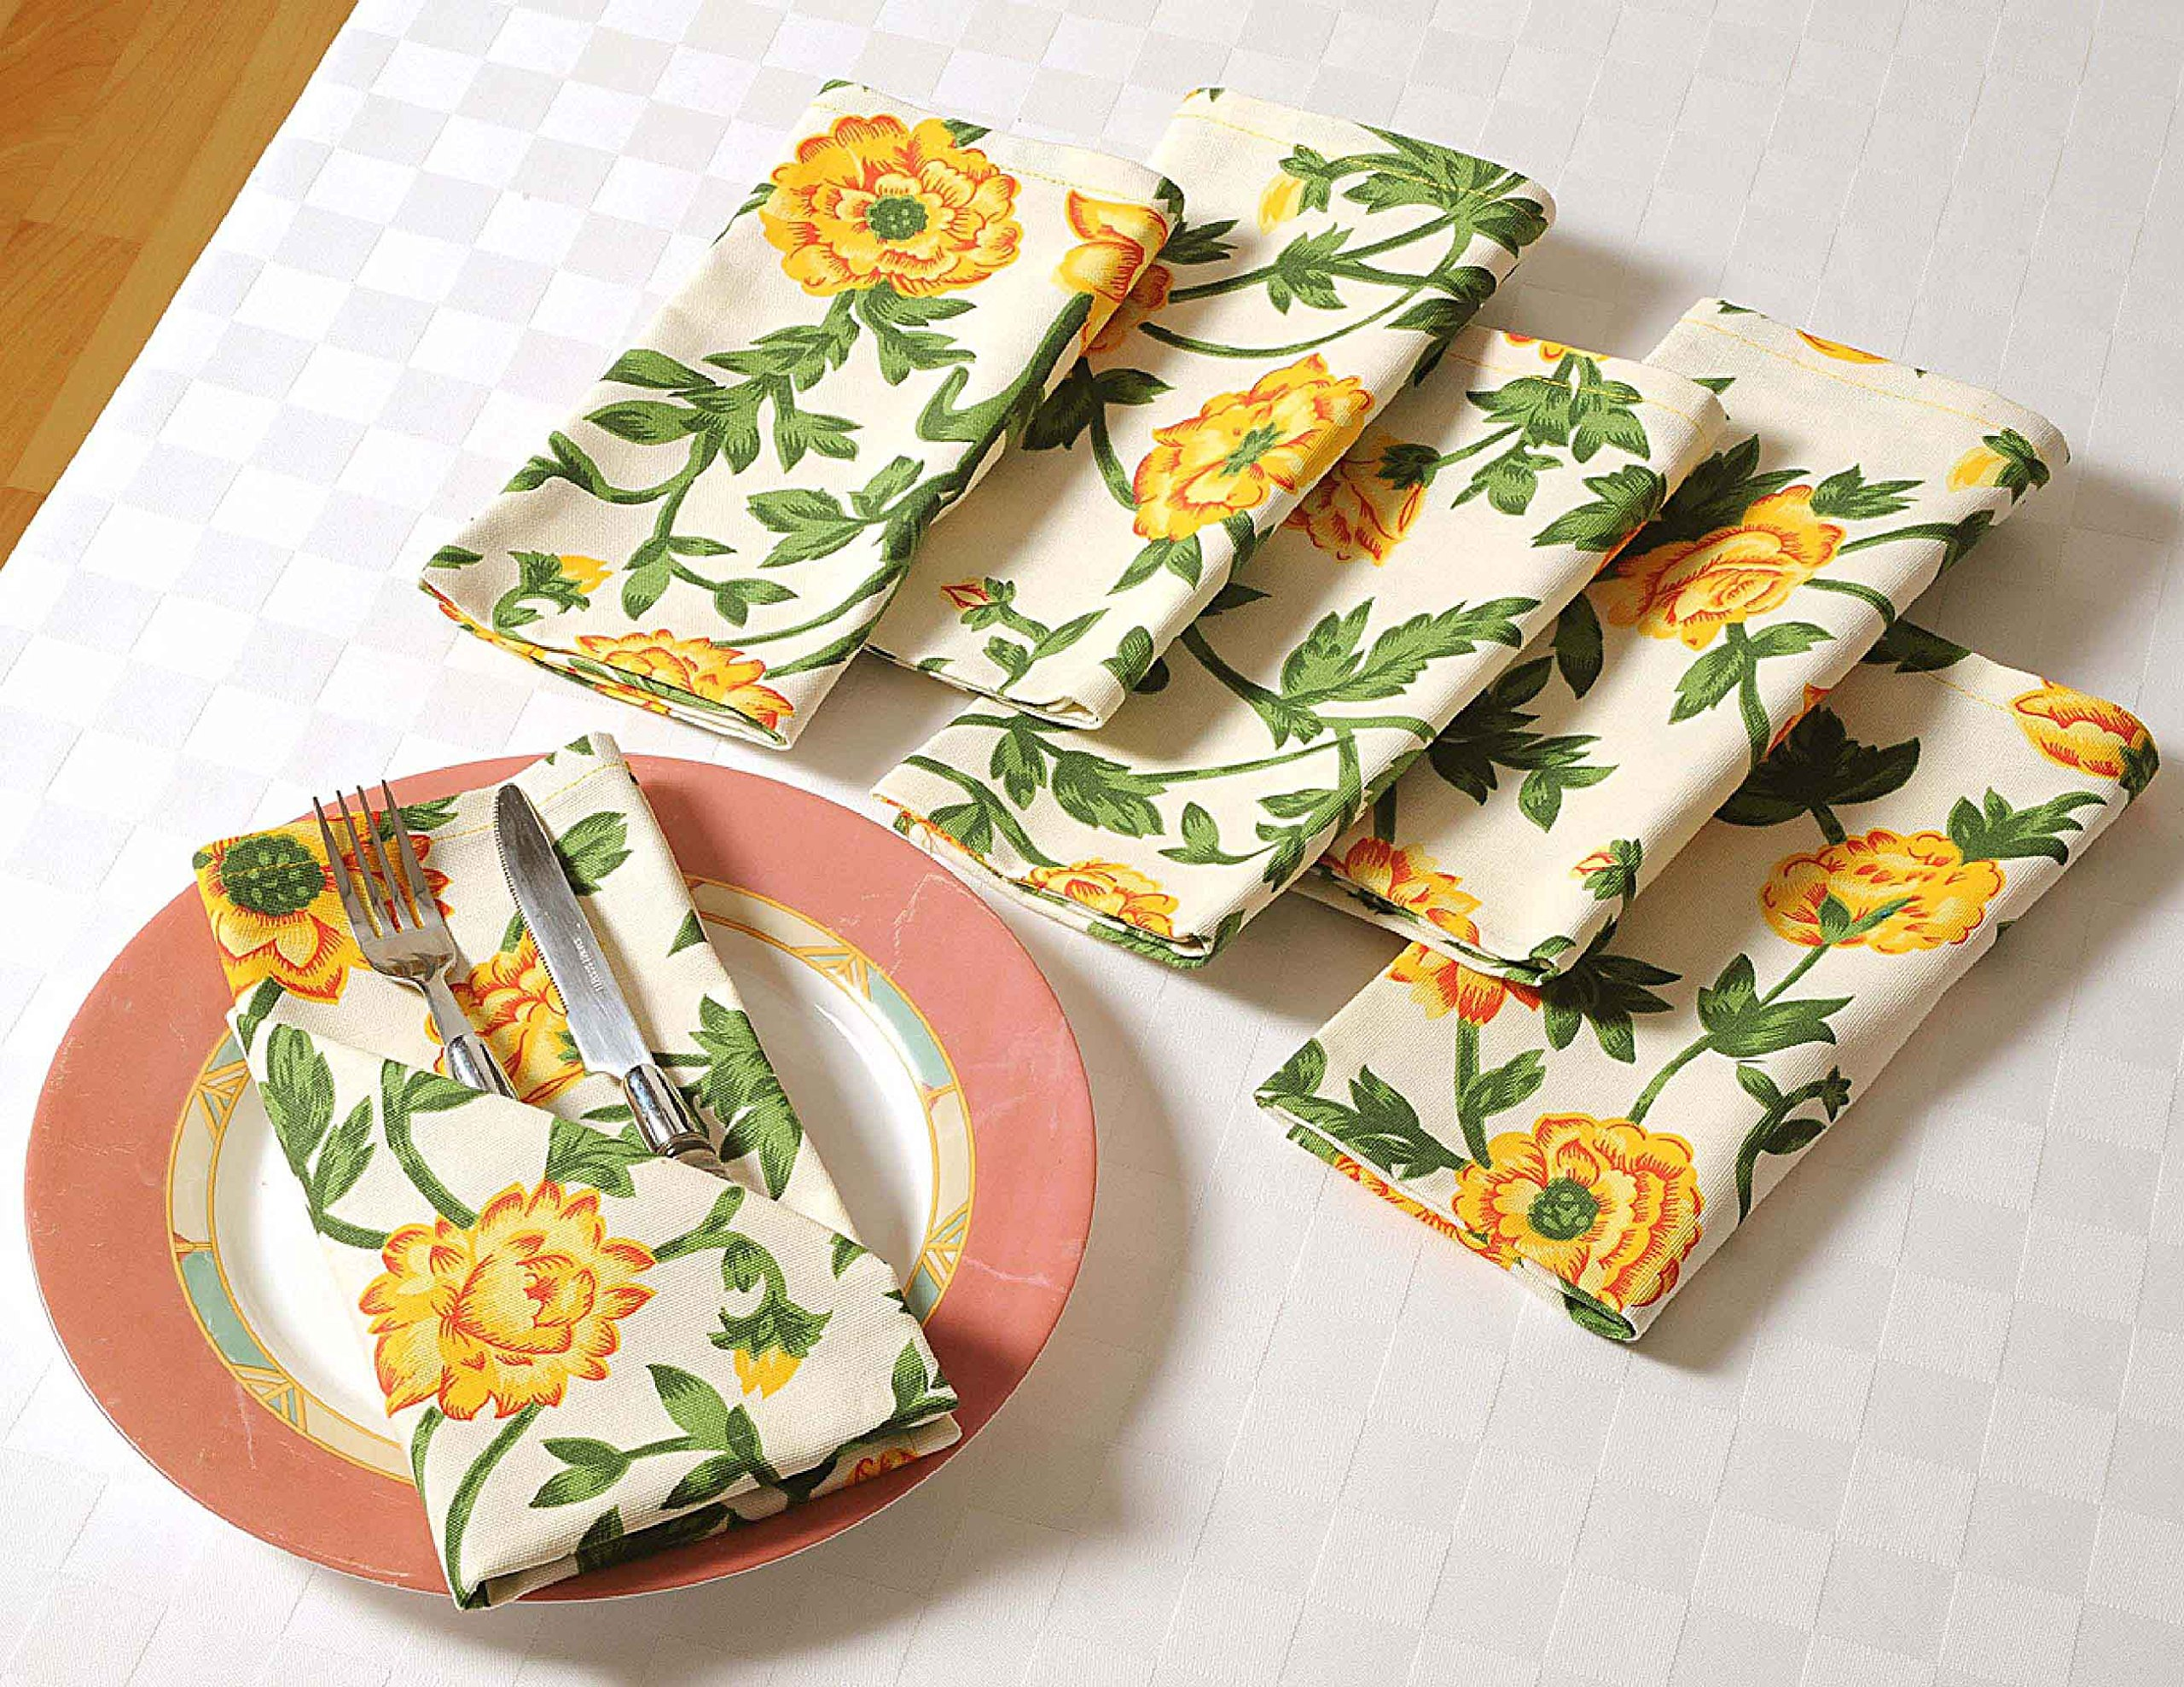 ShalinIndia Floral Spring Cotton Drink Beverage Cloth Napkins - 10'' x 10'' - Set of 100 Premium Table Linens for Weddings & Parties - Cream, Yellow and Green Rose by ShalinIndia